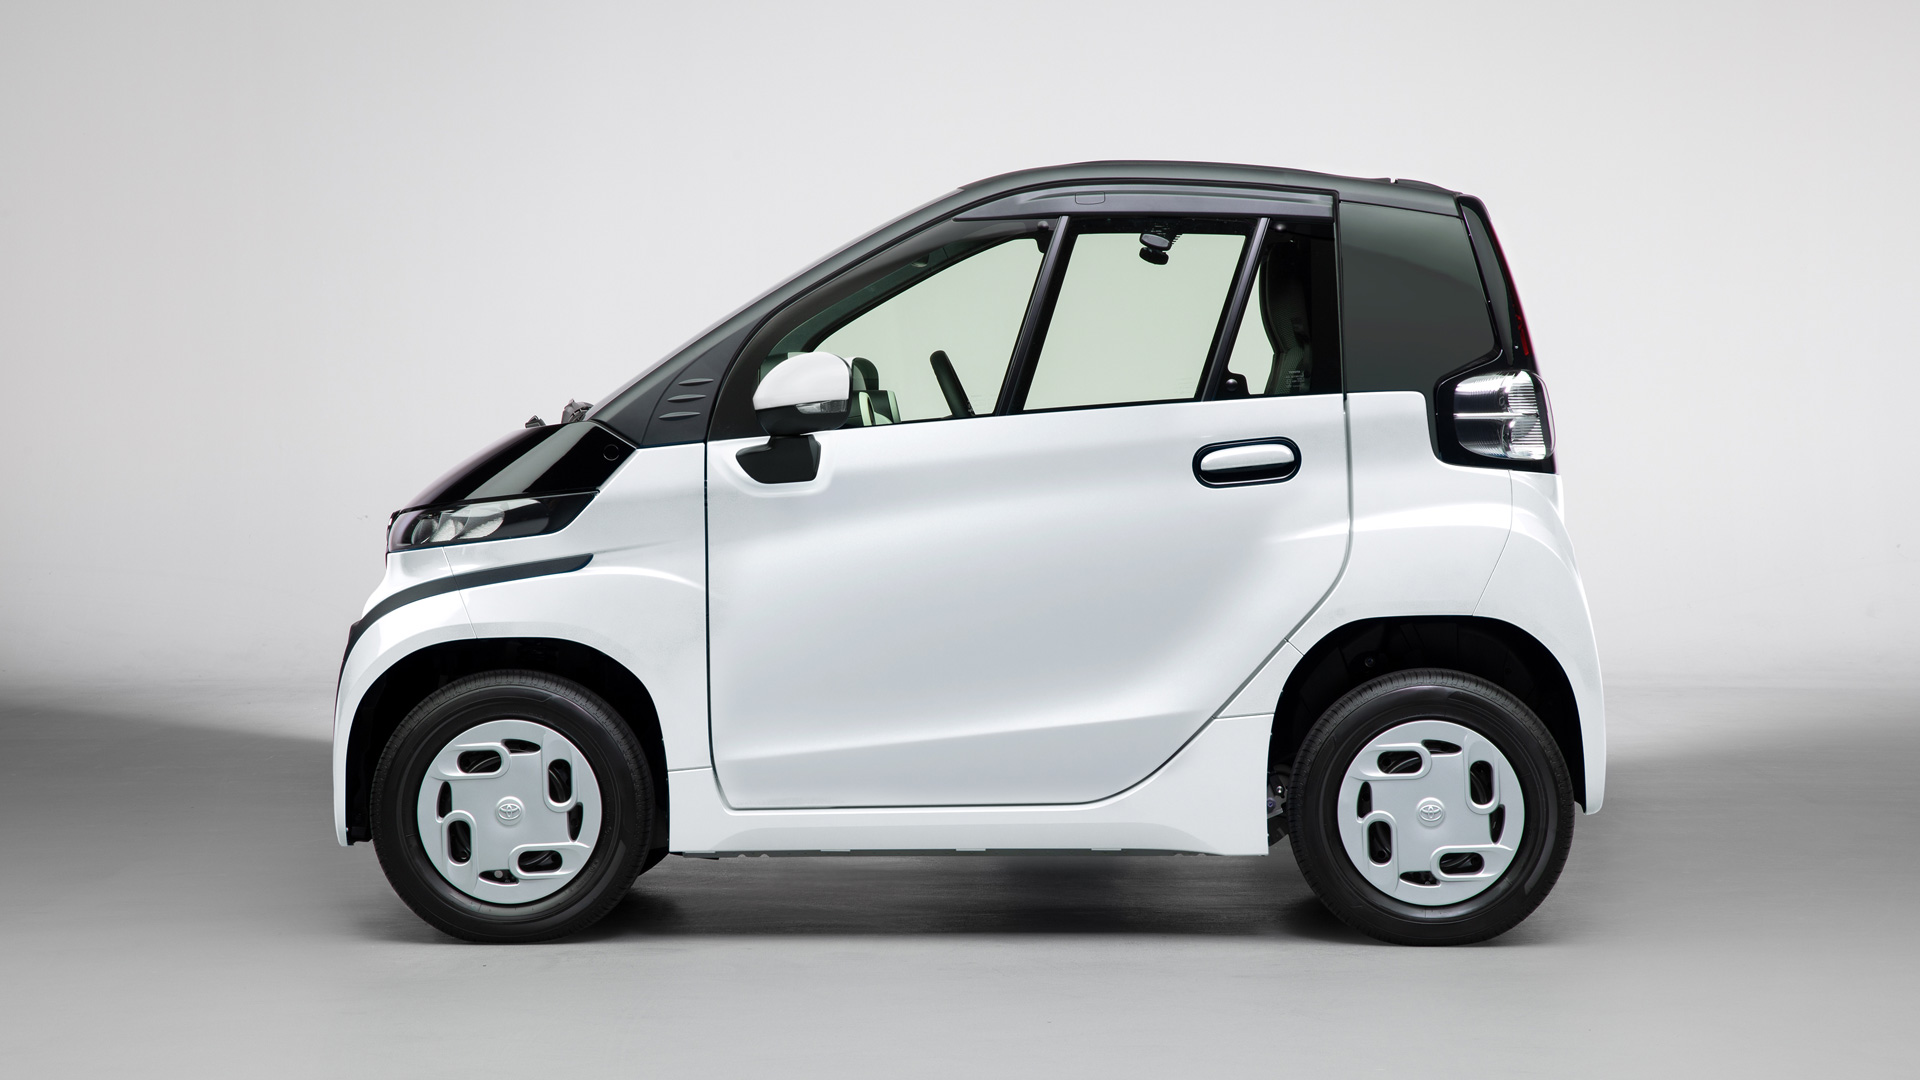 """Toyota Launches """"C+pod"""" Ultra-Compact Battery Electric Vehicle in JapanAn environmentally-friendly two-seater BEV that expands the freedom of movement - Image 6"""